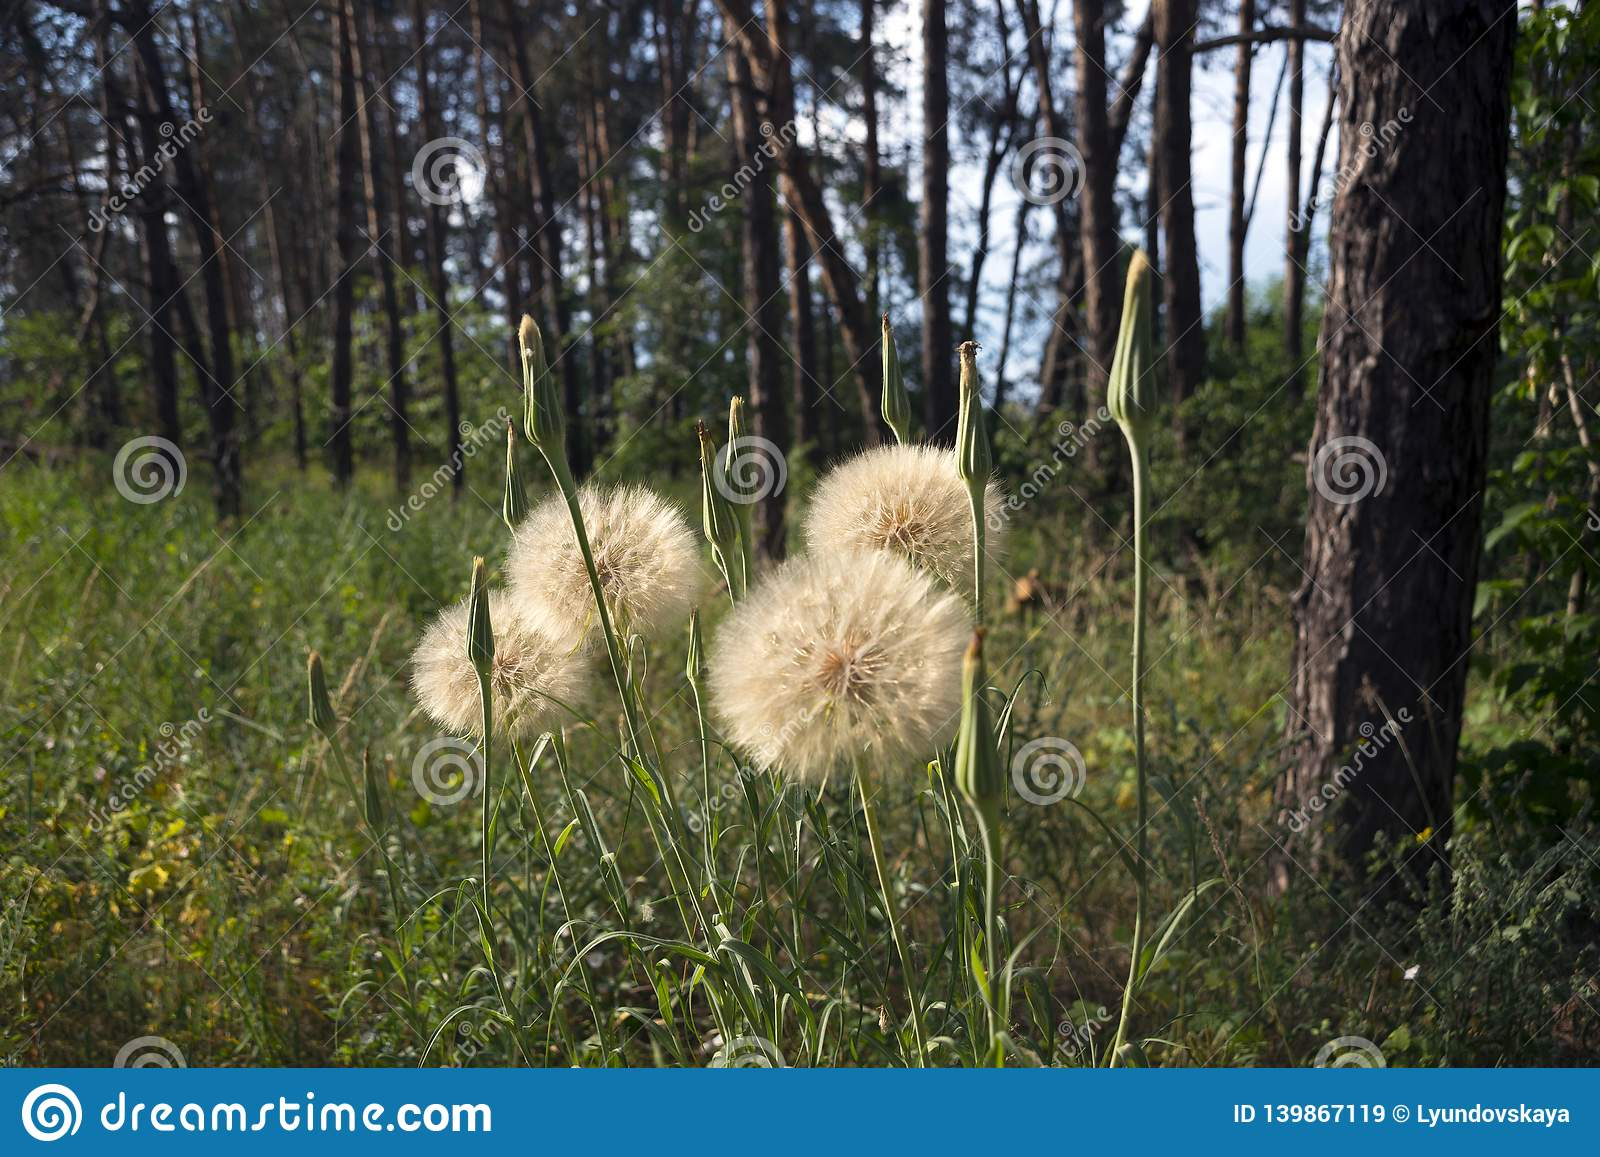 Medicinal plant - dandelion, among the trees in the coniferous forest.